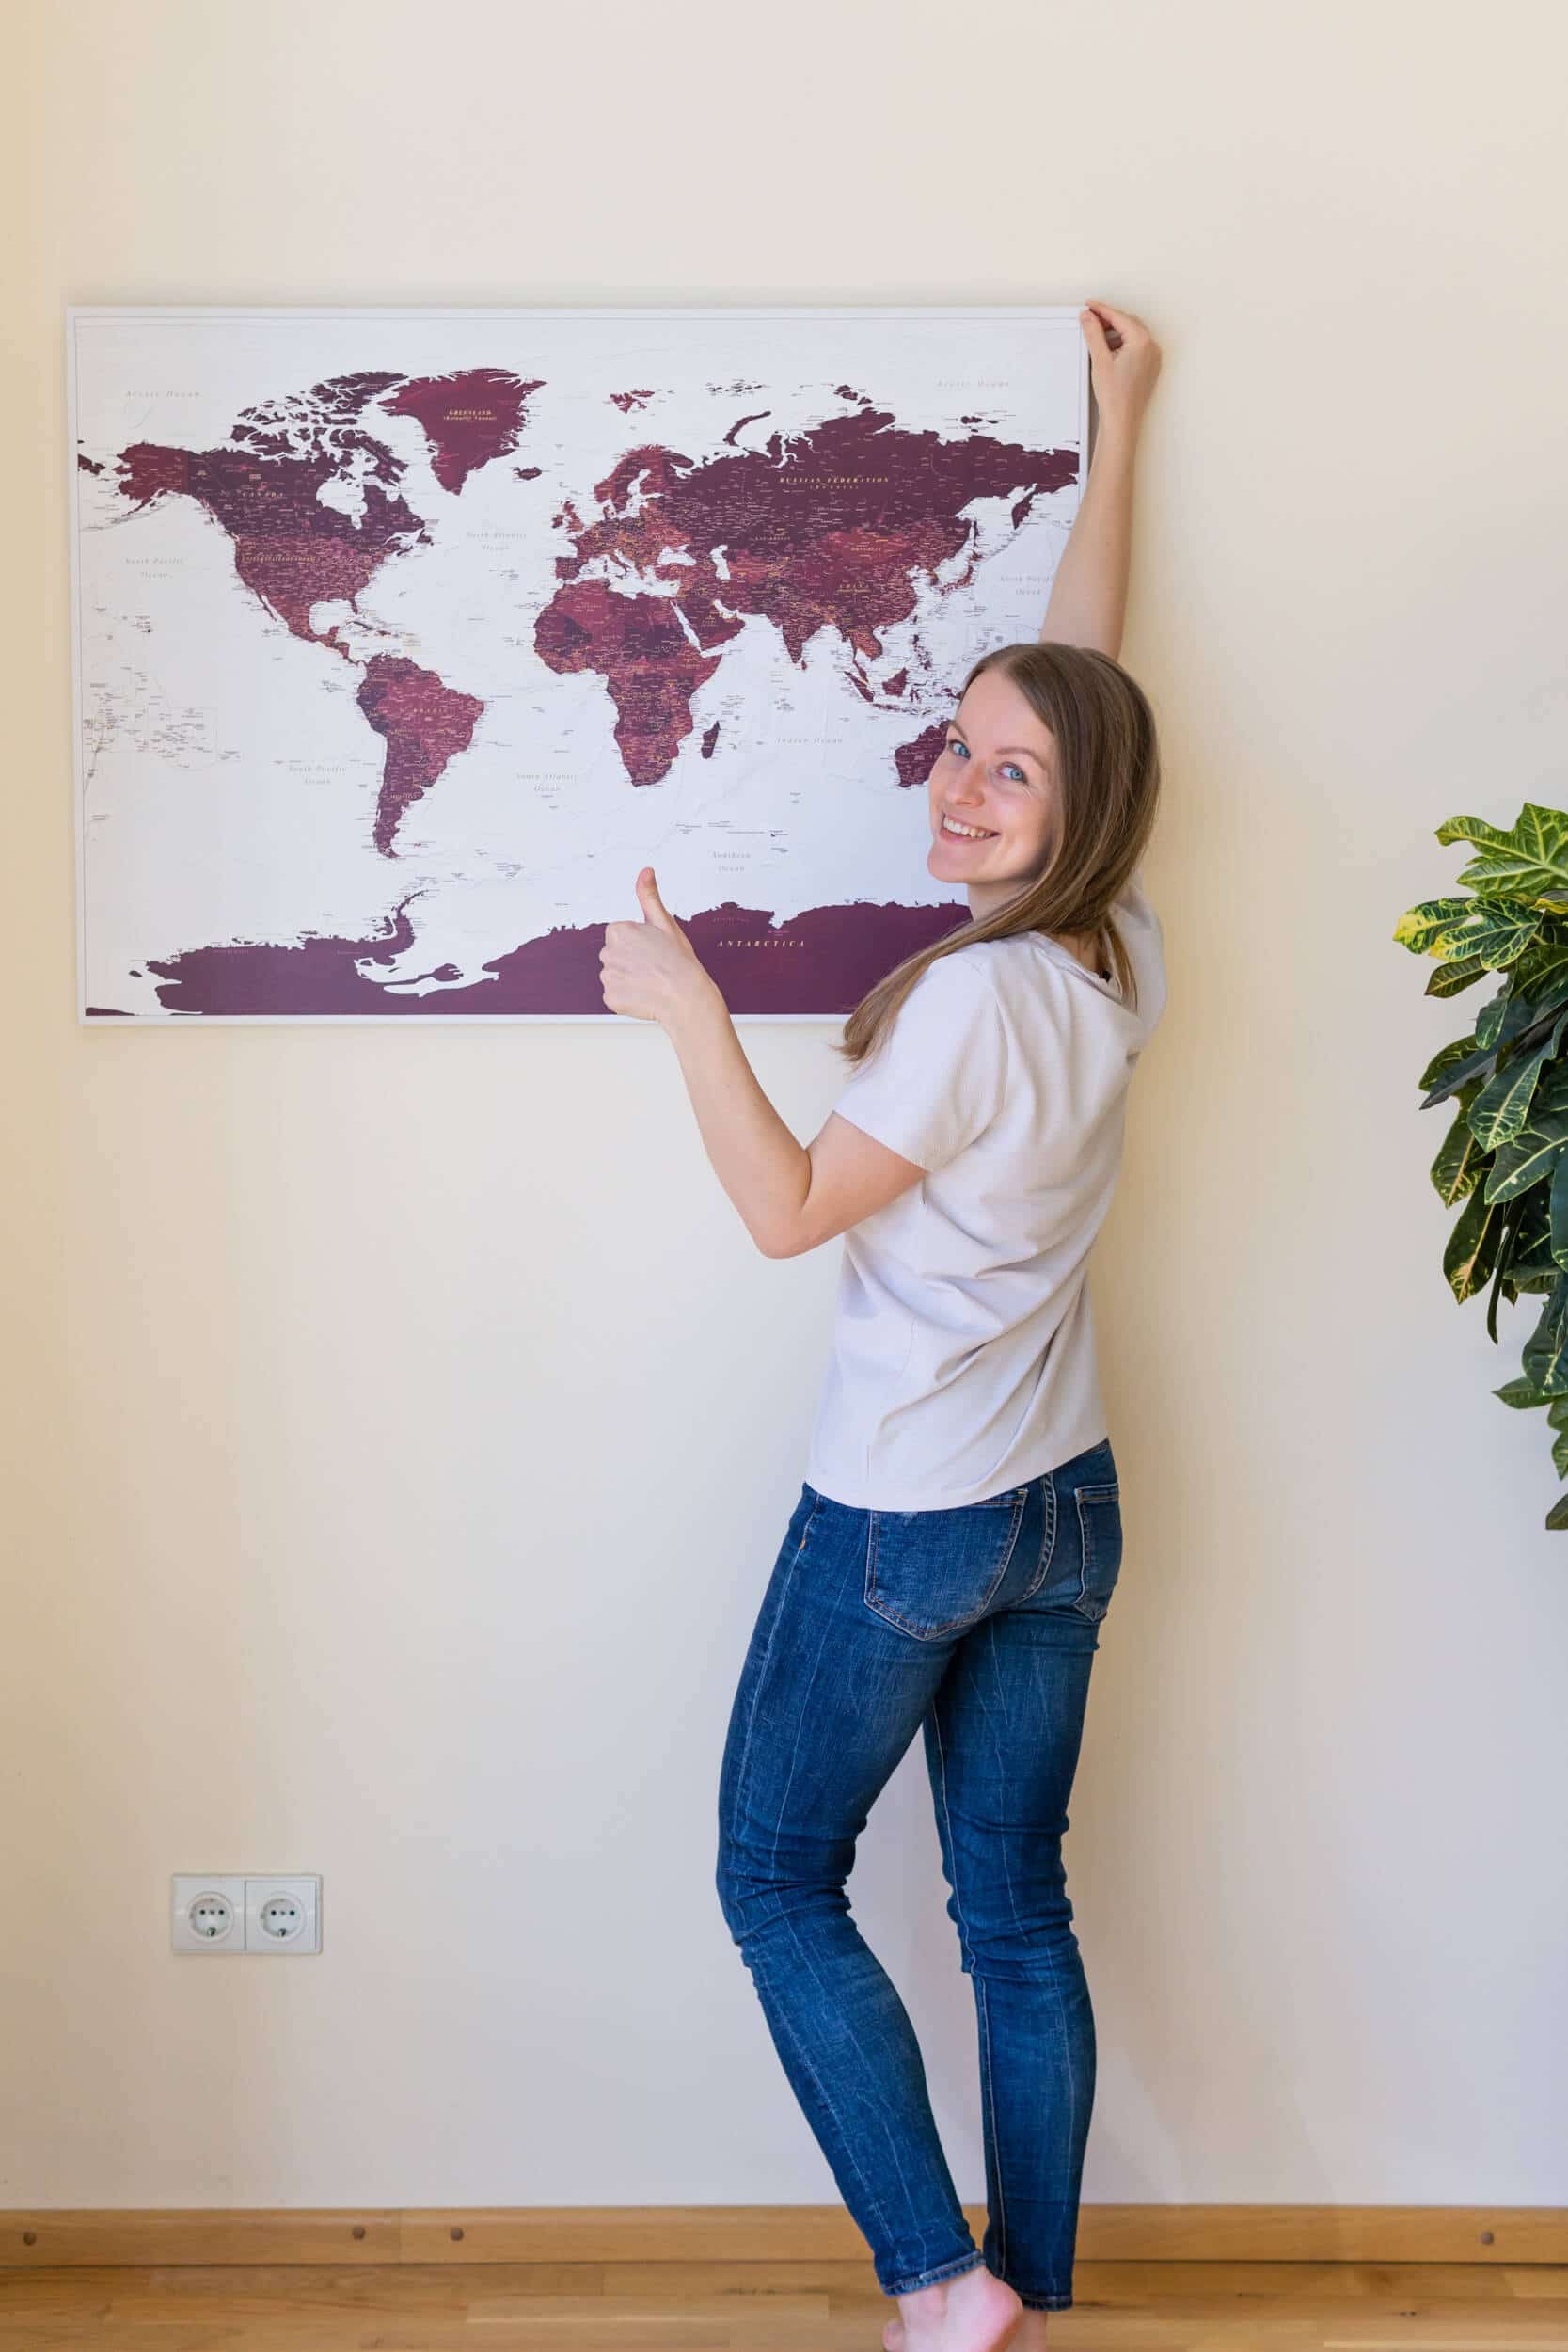 How to hang a Trip Map travel map on a wall without drilling